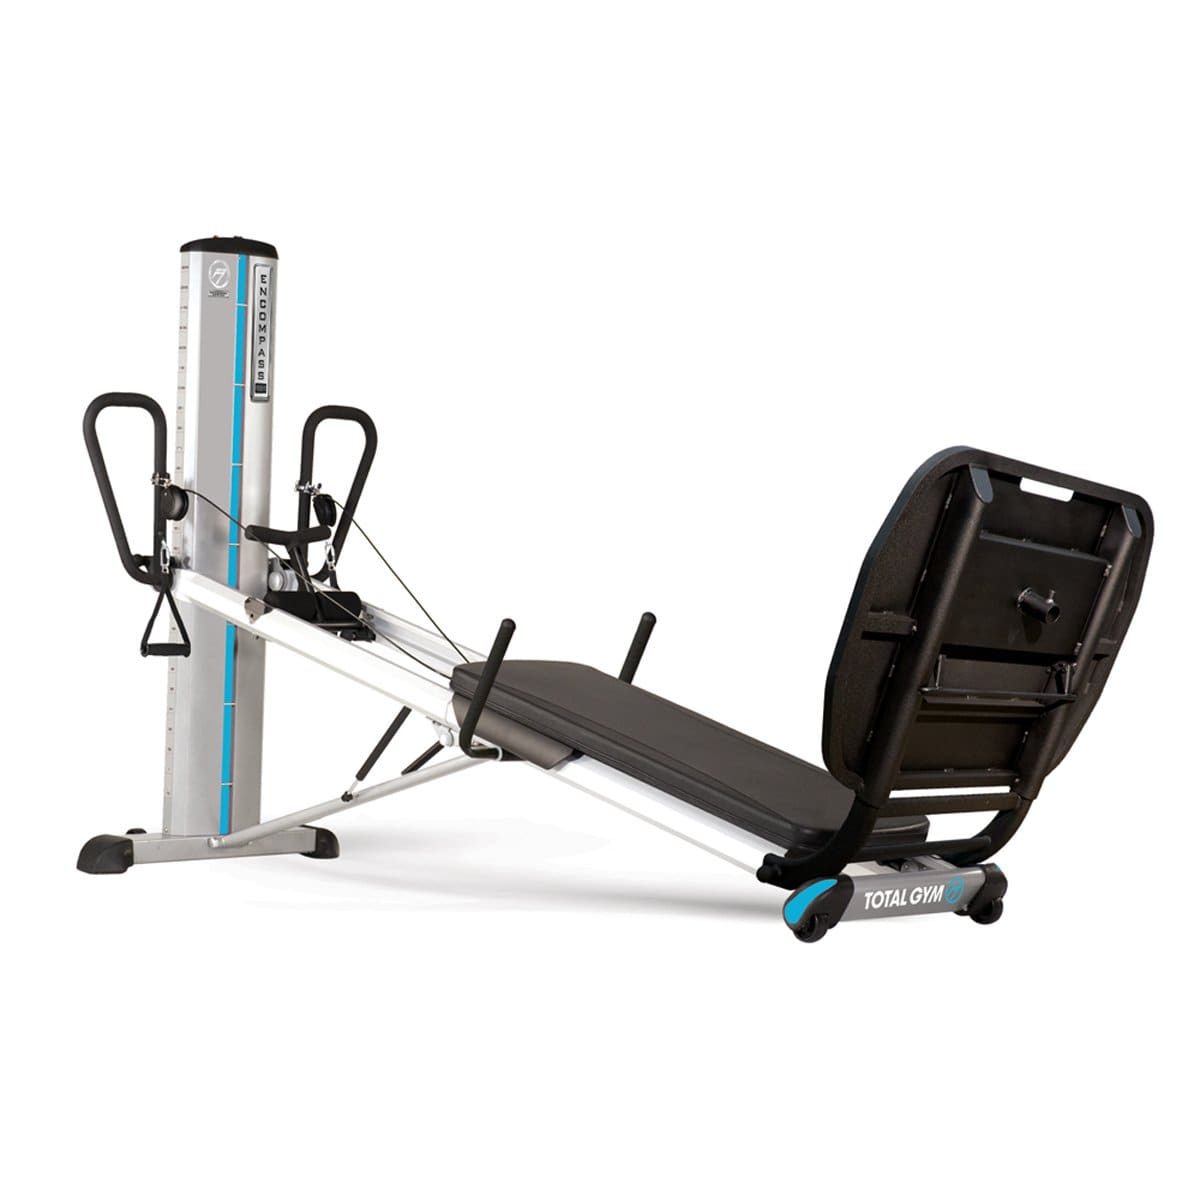 Total Gym Encompass Commercial PowerTower Recovery Workout Machine - Barbell Flex